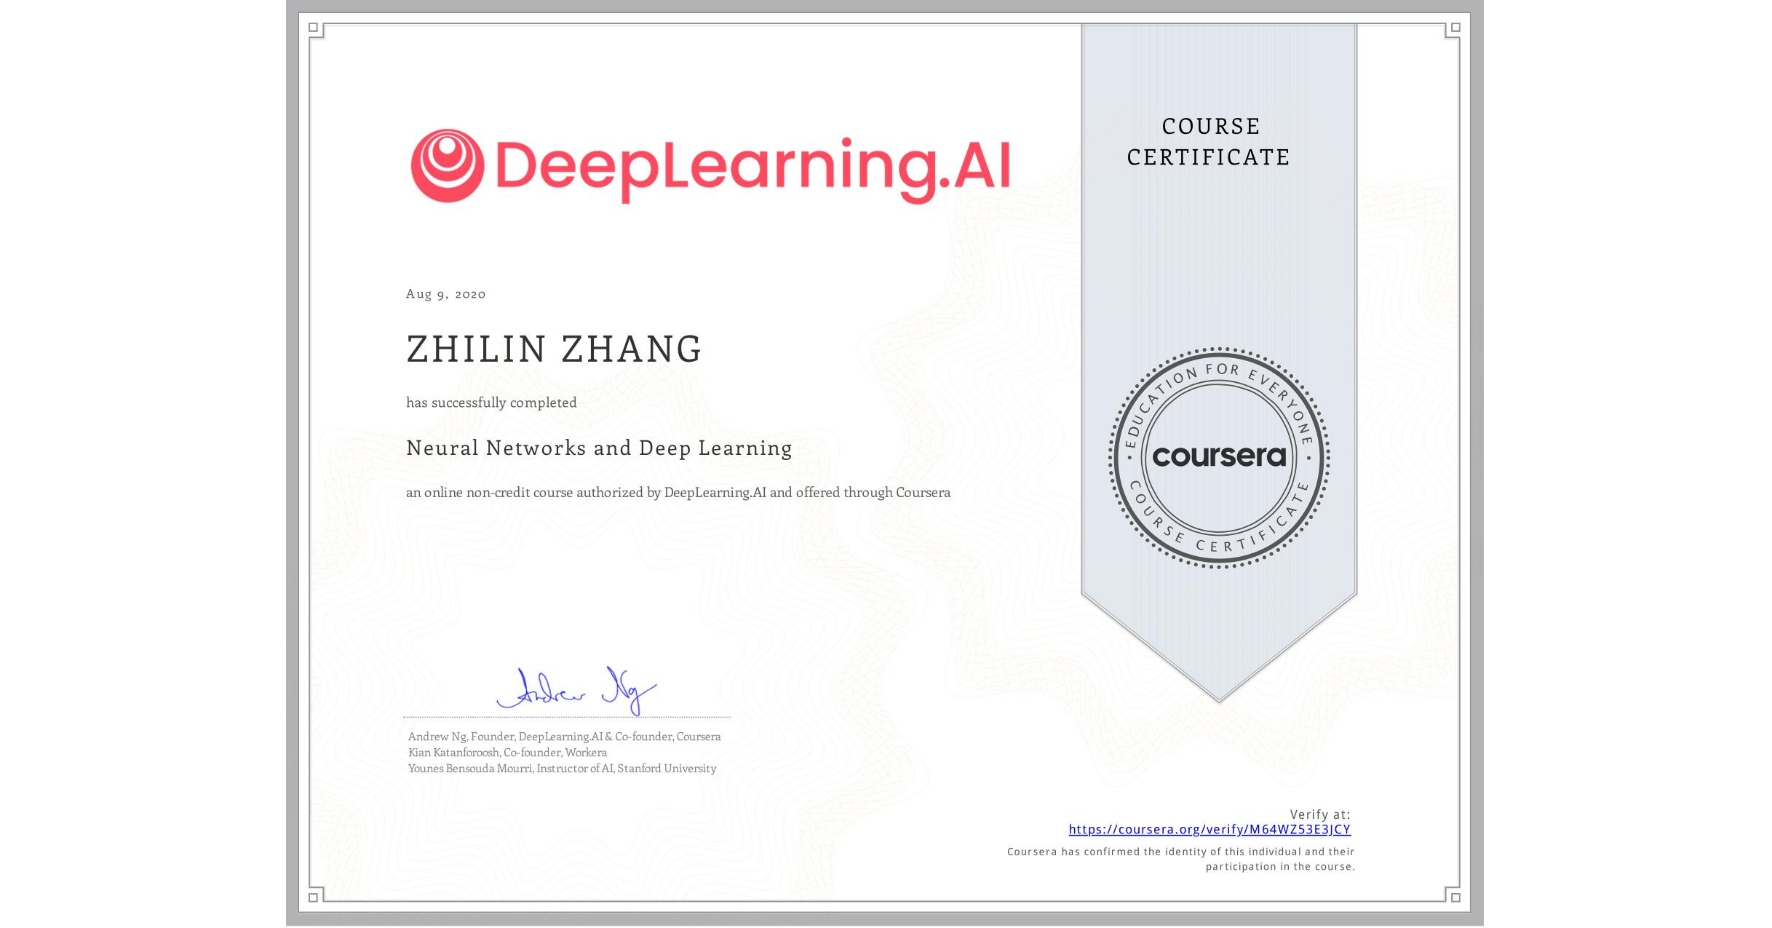 View certificate for ZHILIN ZHANG, Neural Networks and Deep Learning, an online non-credit course authorized by DeepLearning.AI and offered through Coursera